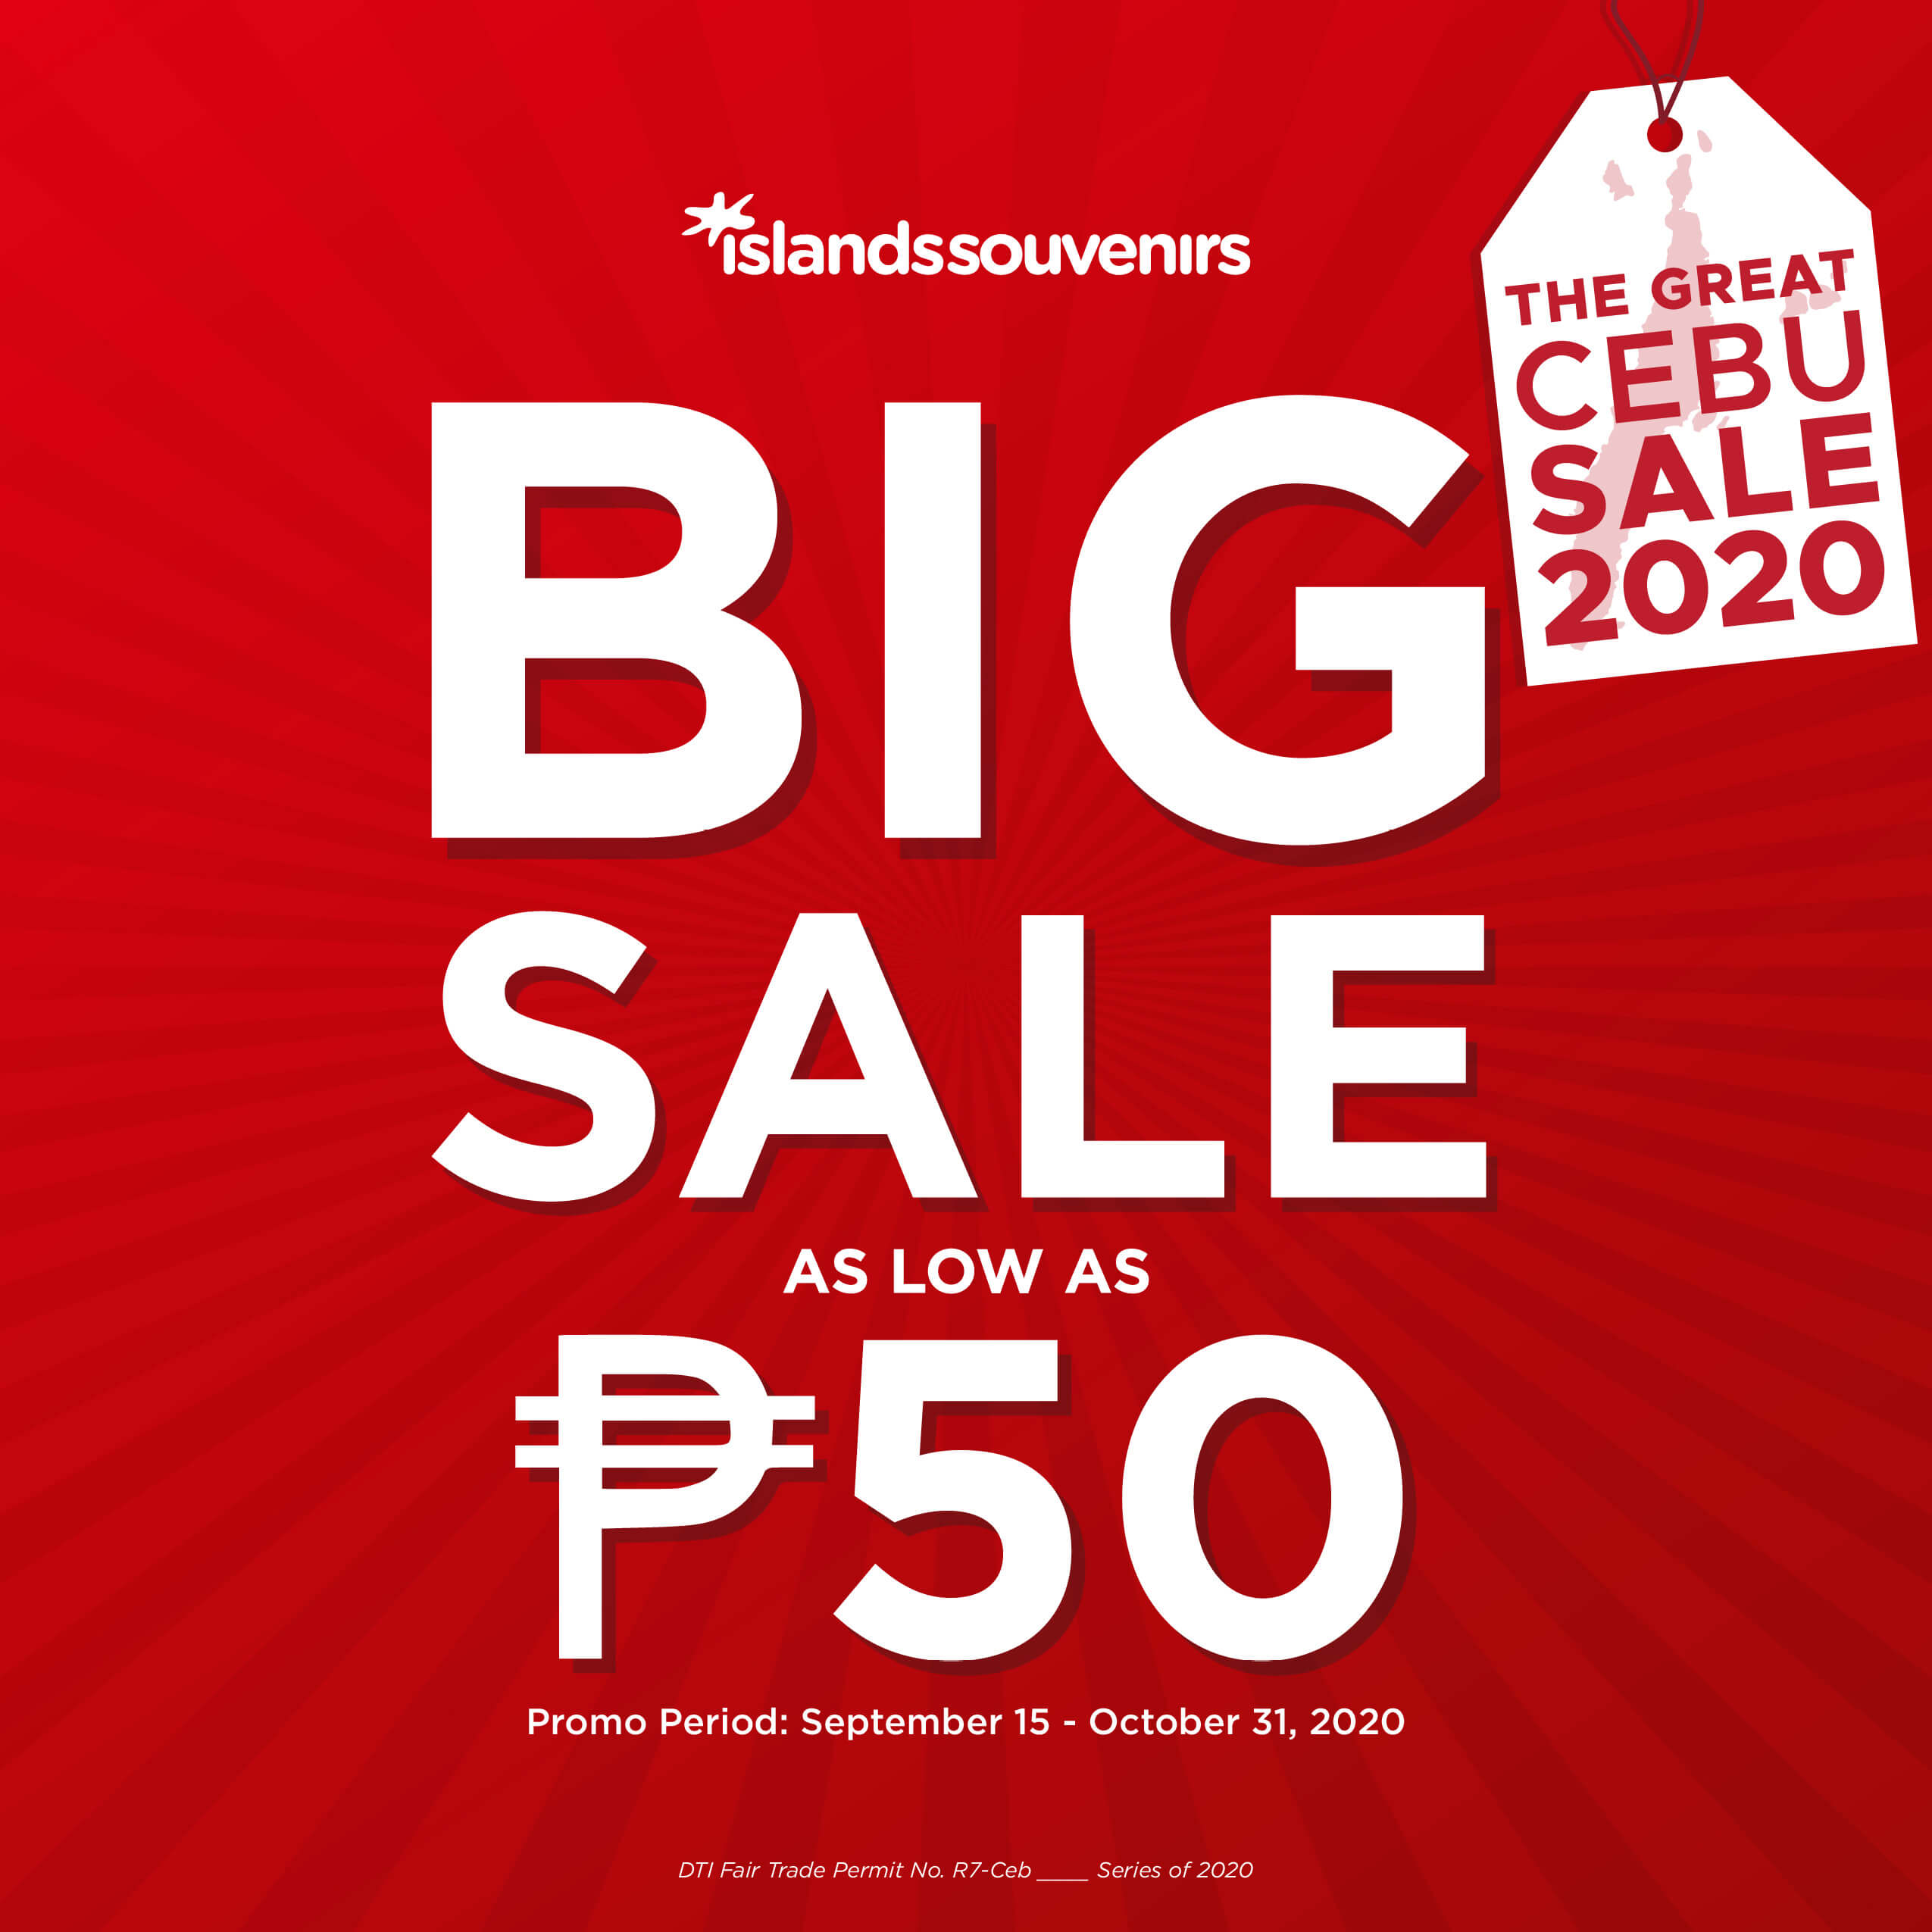 Islands Souvenirs offers items on sale for as low as P50